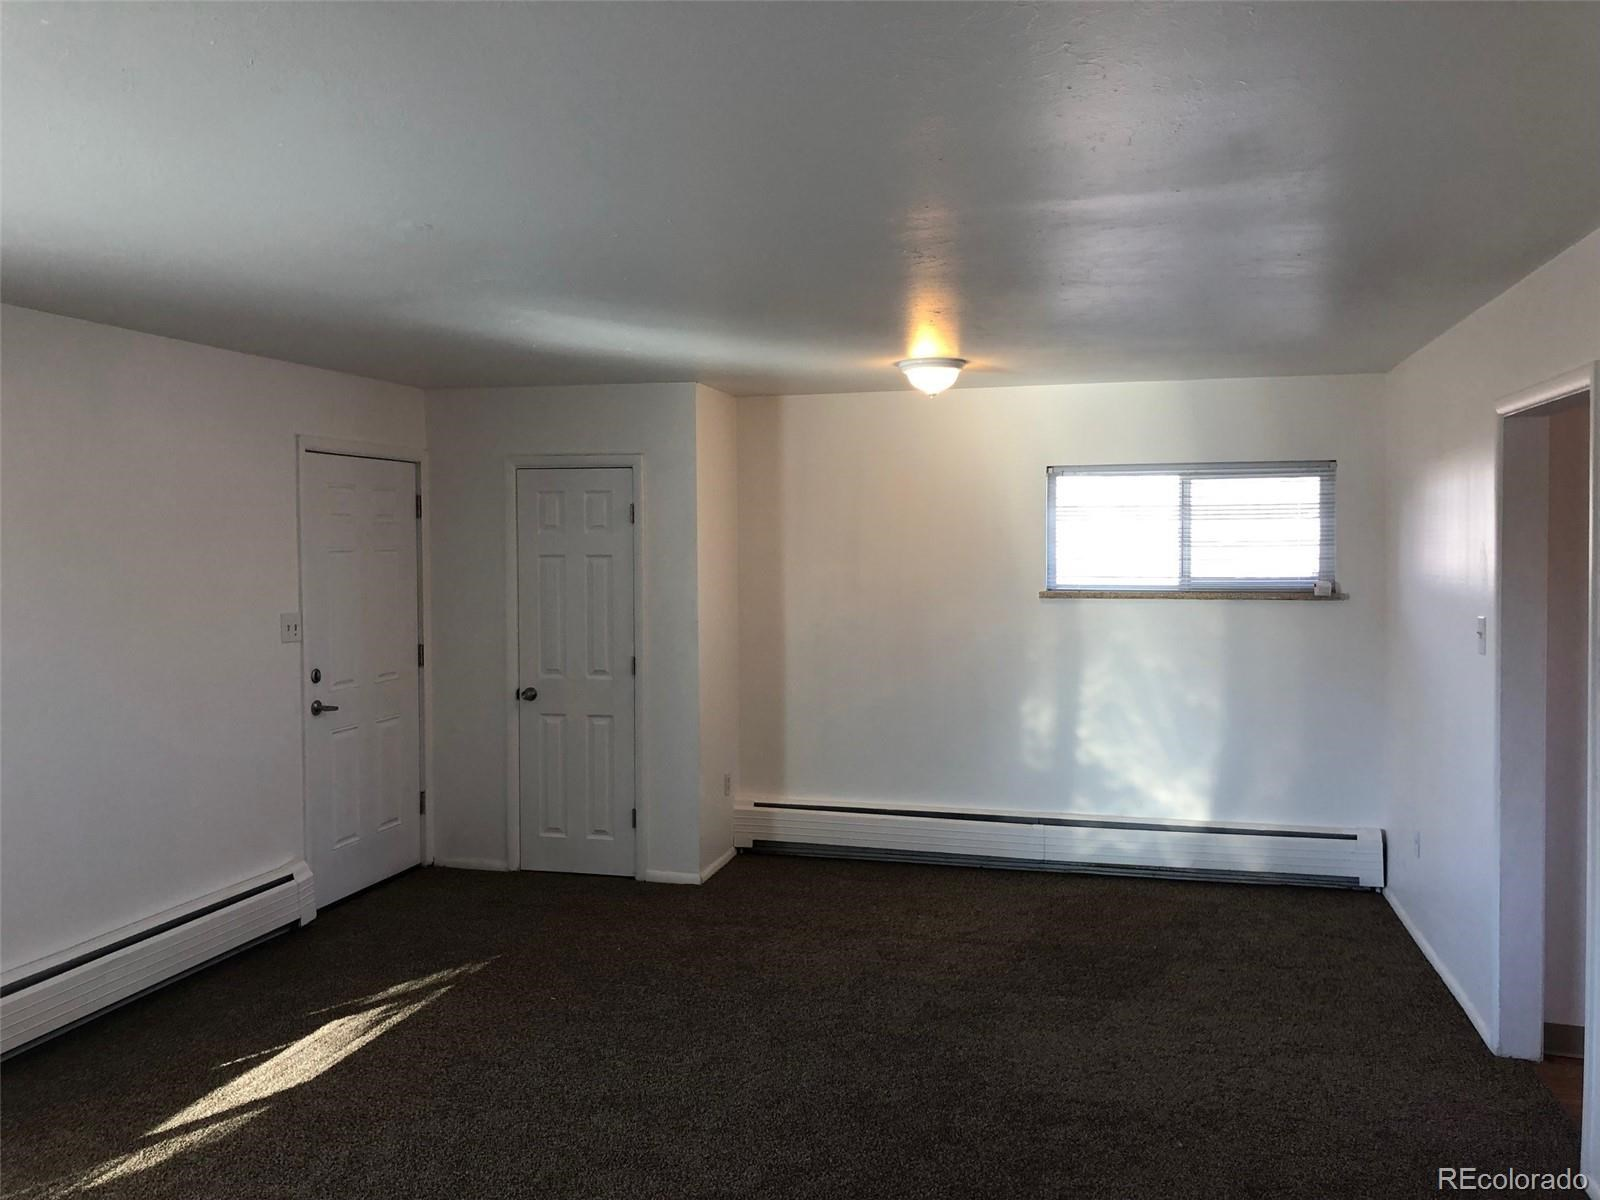 MLS# 9636149 - 9 - 5055 E Martin Luther King Jr Boulevard #5085, Denver, CO 80207